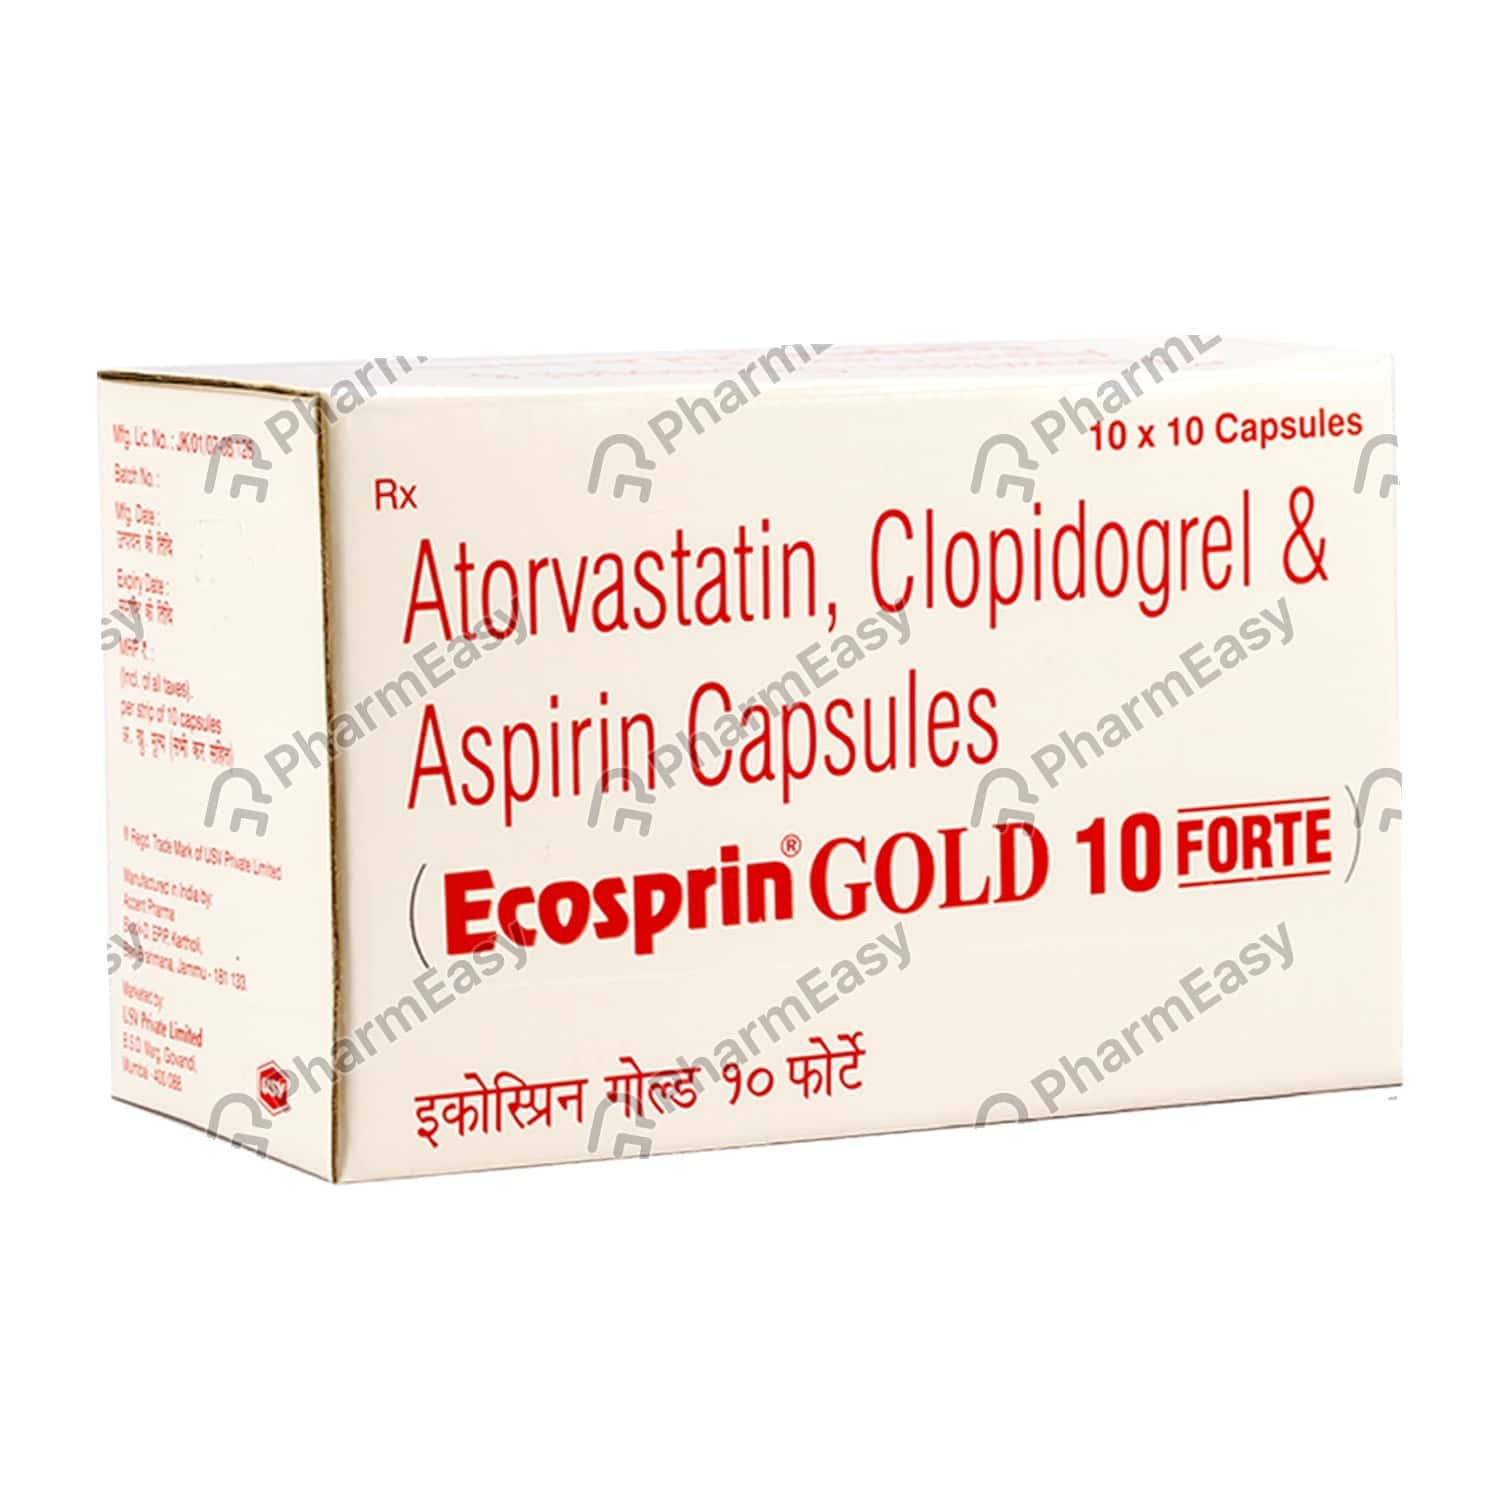 Ecosprin Gold 10mg Forte Strip Of 10 Capsules